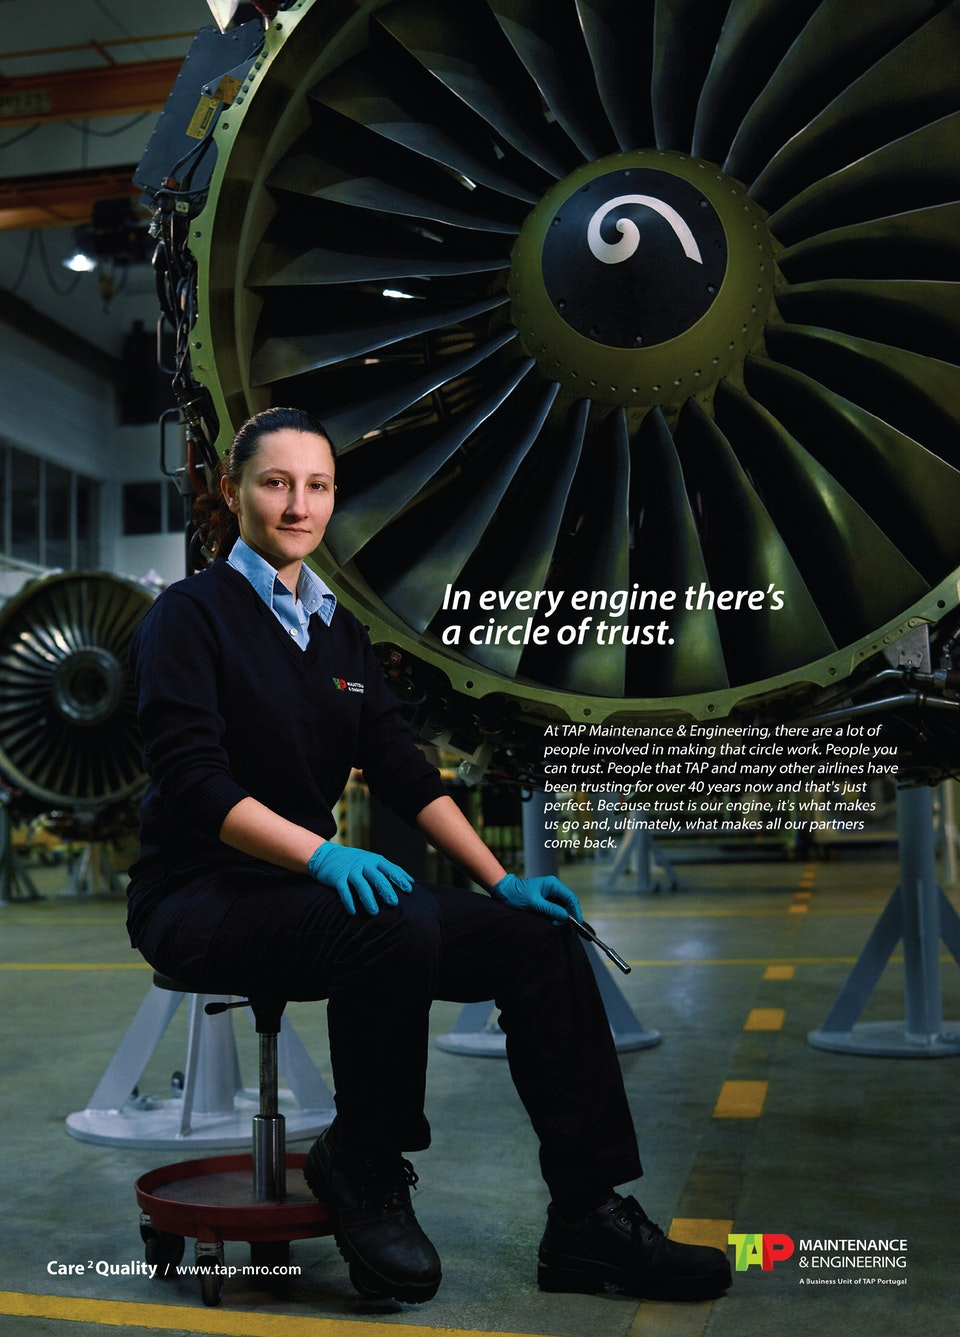 'The Circle of Trust' - TAP MAINTENANCE & ENGINEERING - ad_magazine